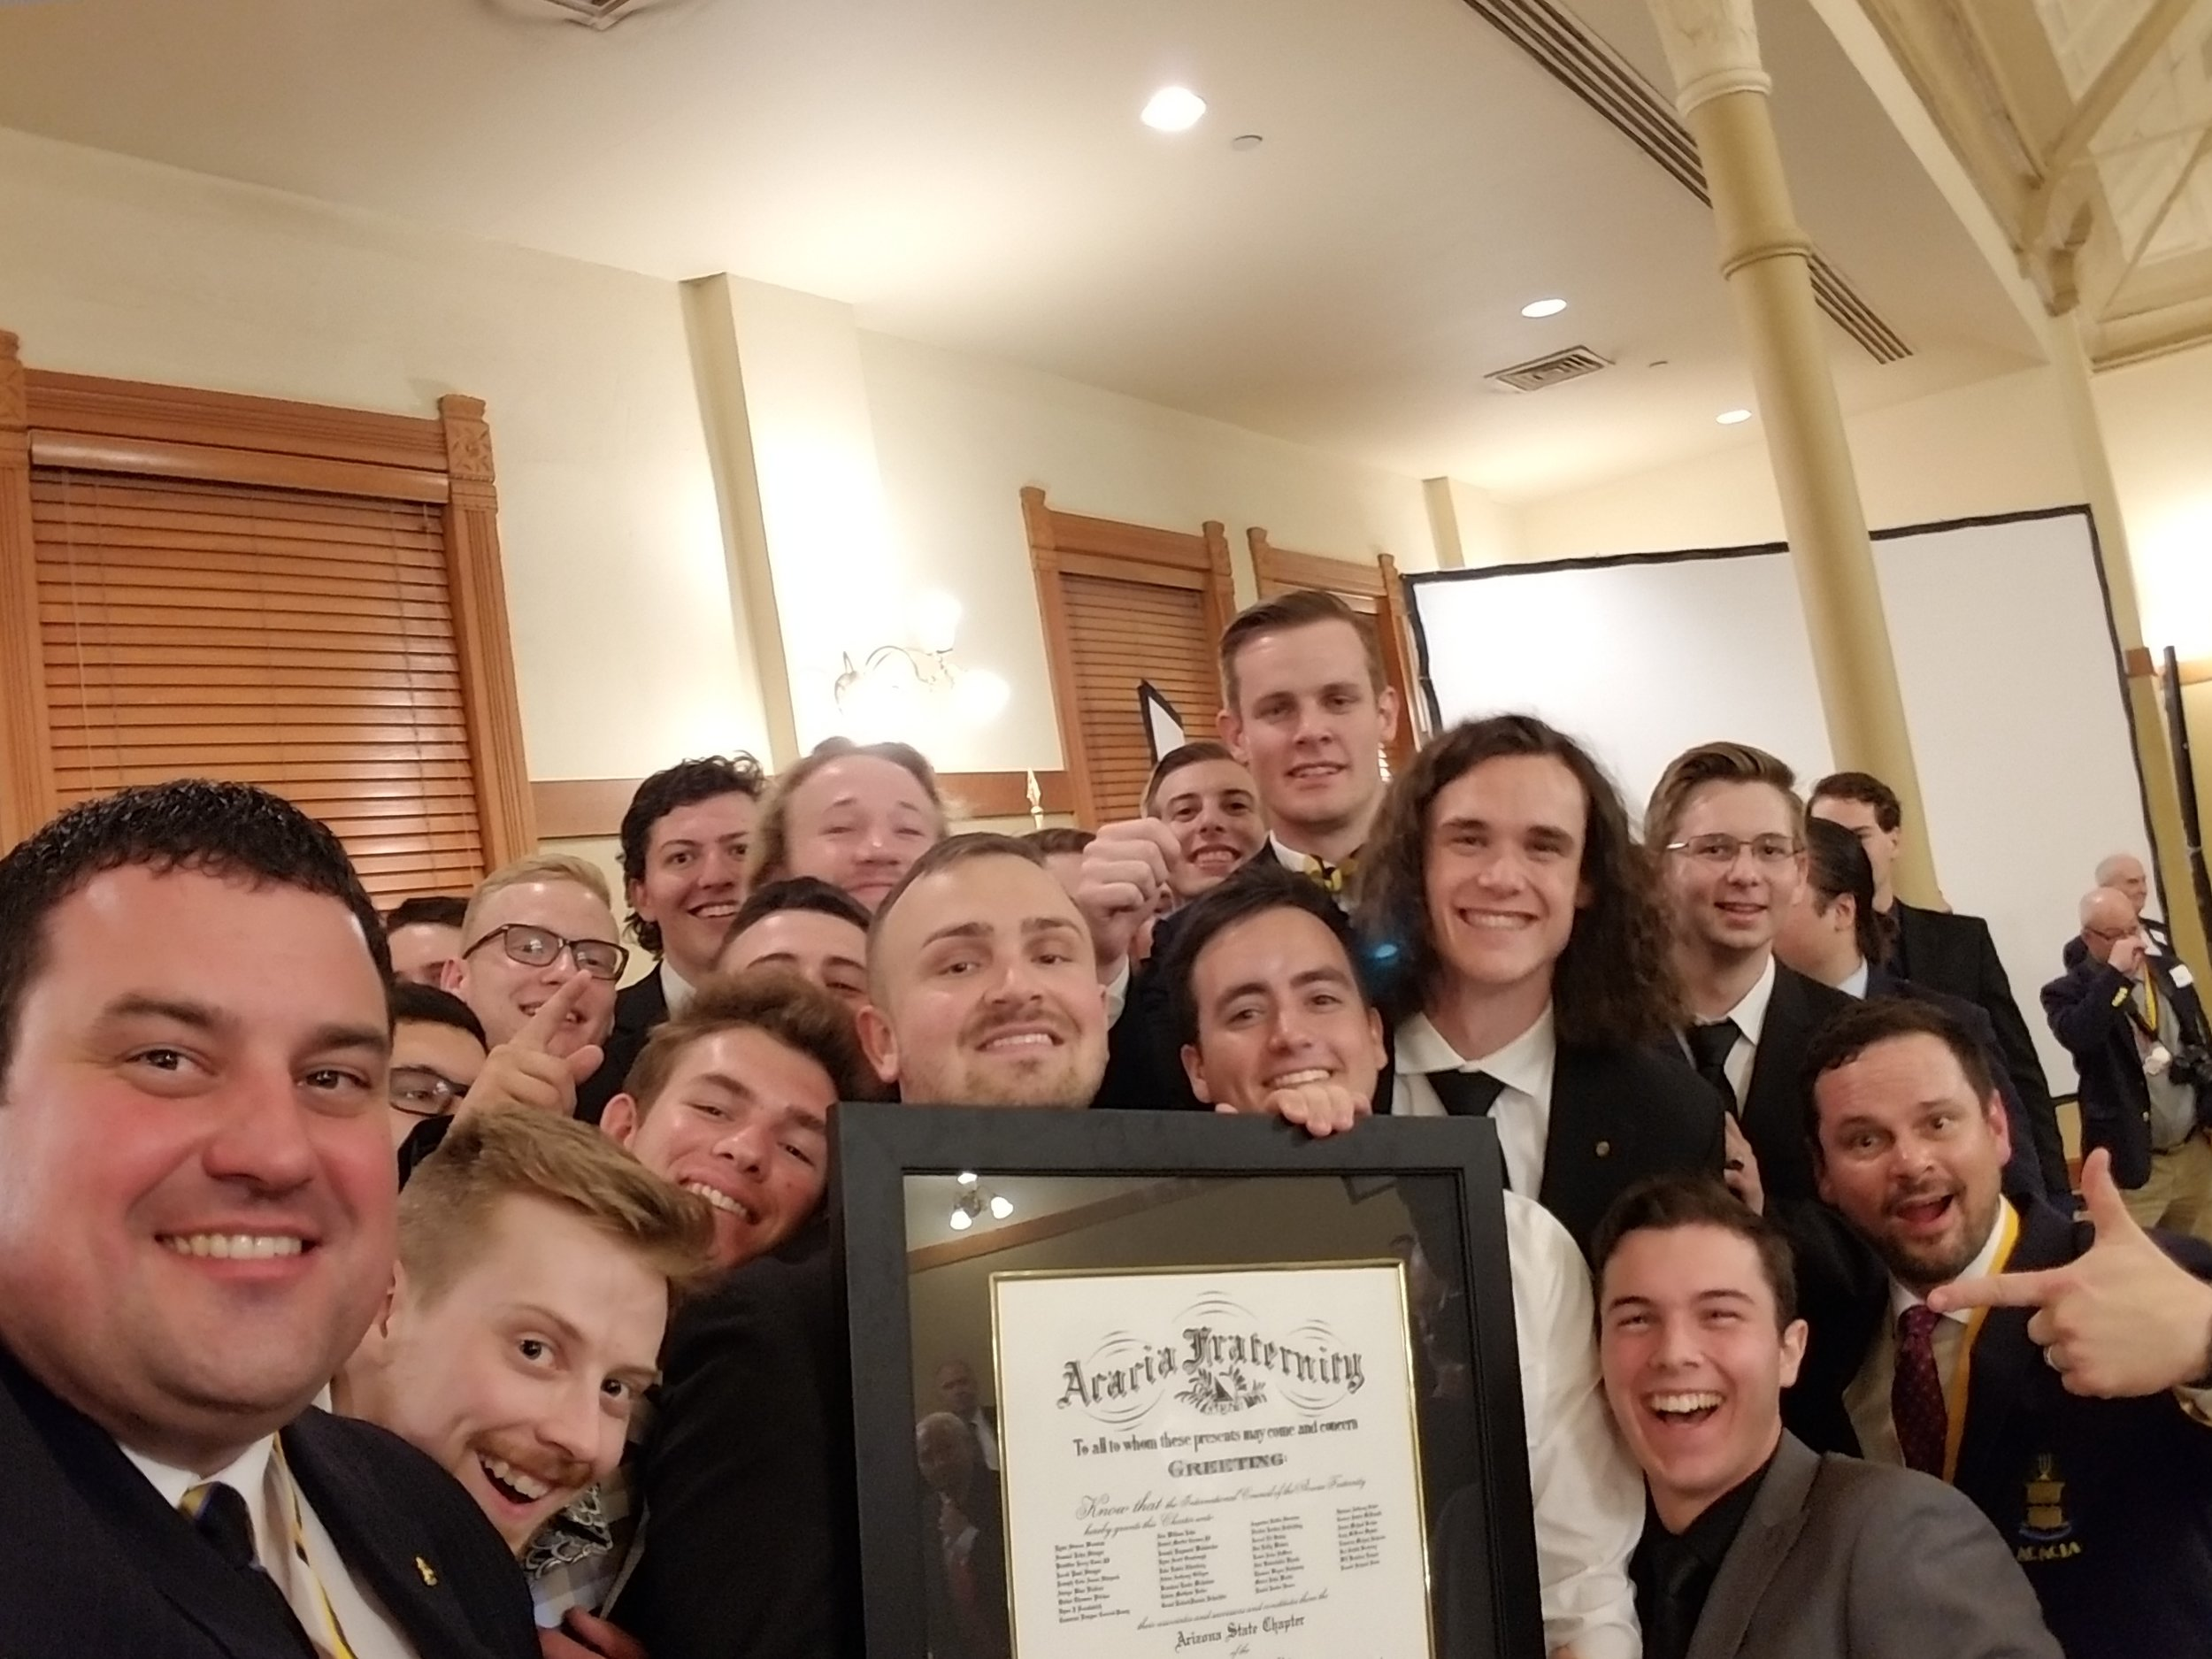 Arizona State members holding their charter with International President Jeremy Davis, Executive Director Patrick McGovern, and Director of Expansion and Recruitment Jerod Miles.